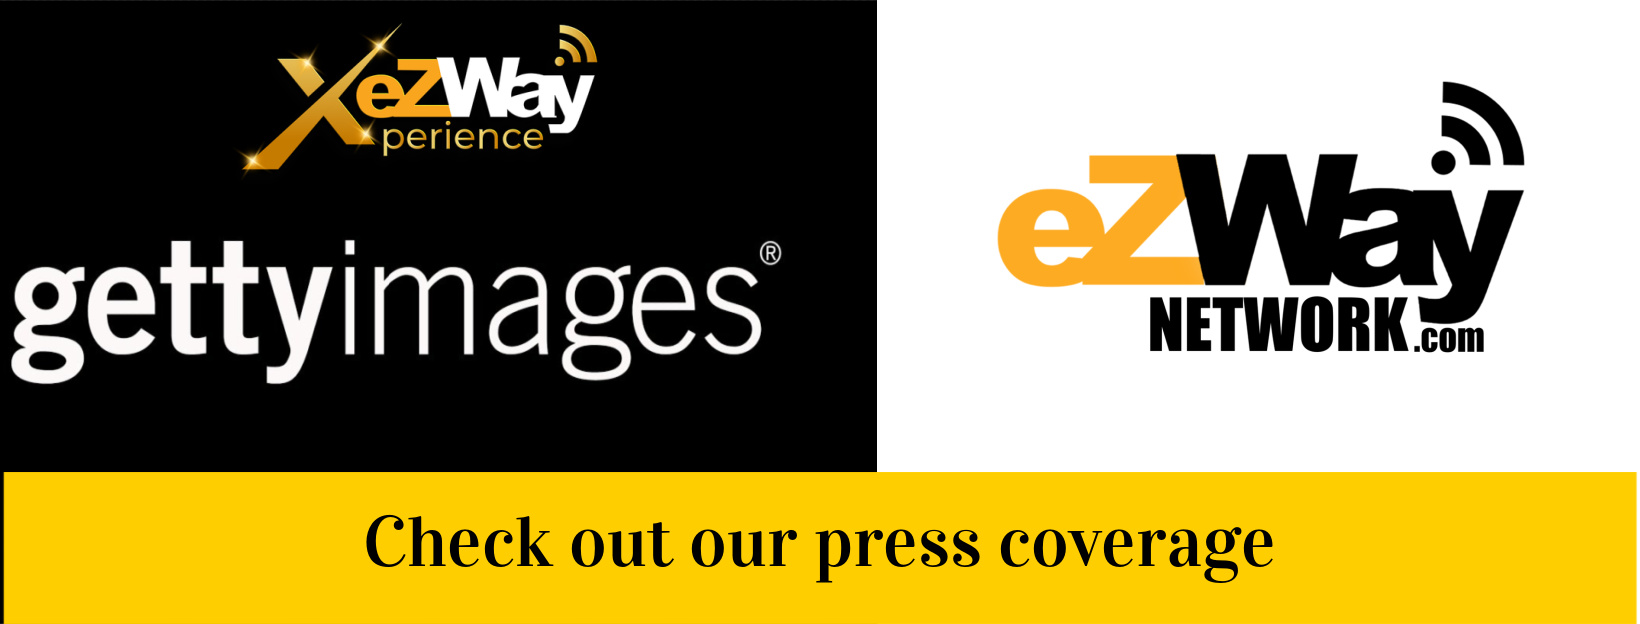 eZWay Xperience Press Coverage